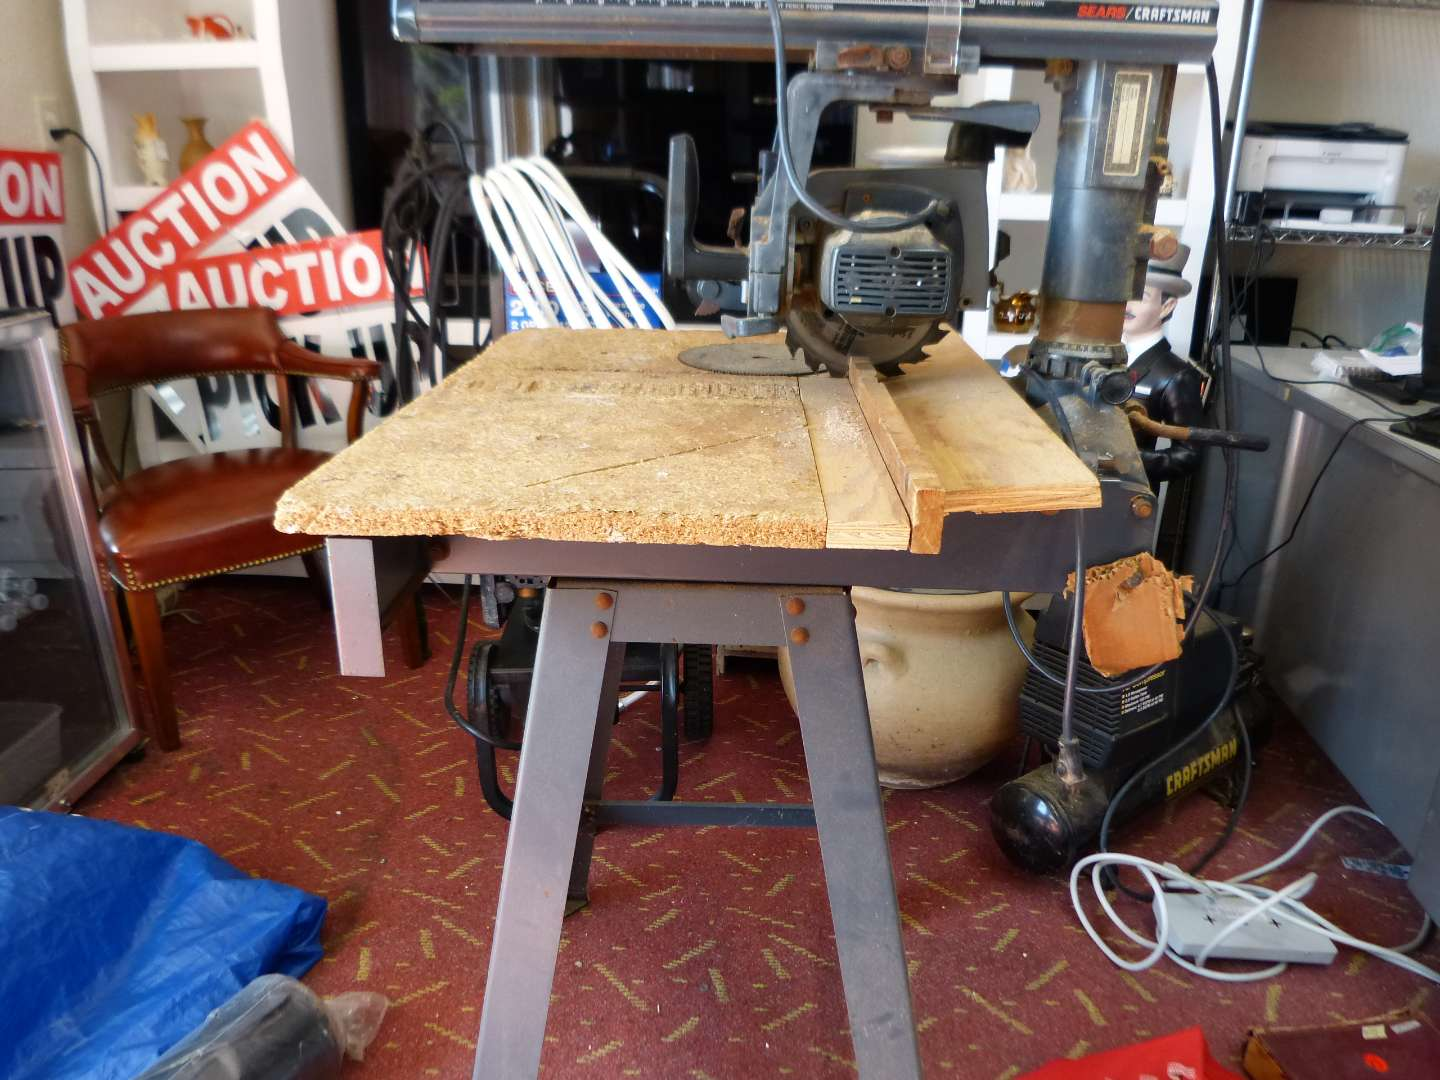 """Lot # 297  Craftsman 801/4"""" radial saw (used but not abused) model # 113.234700"""